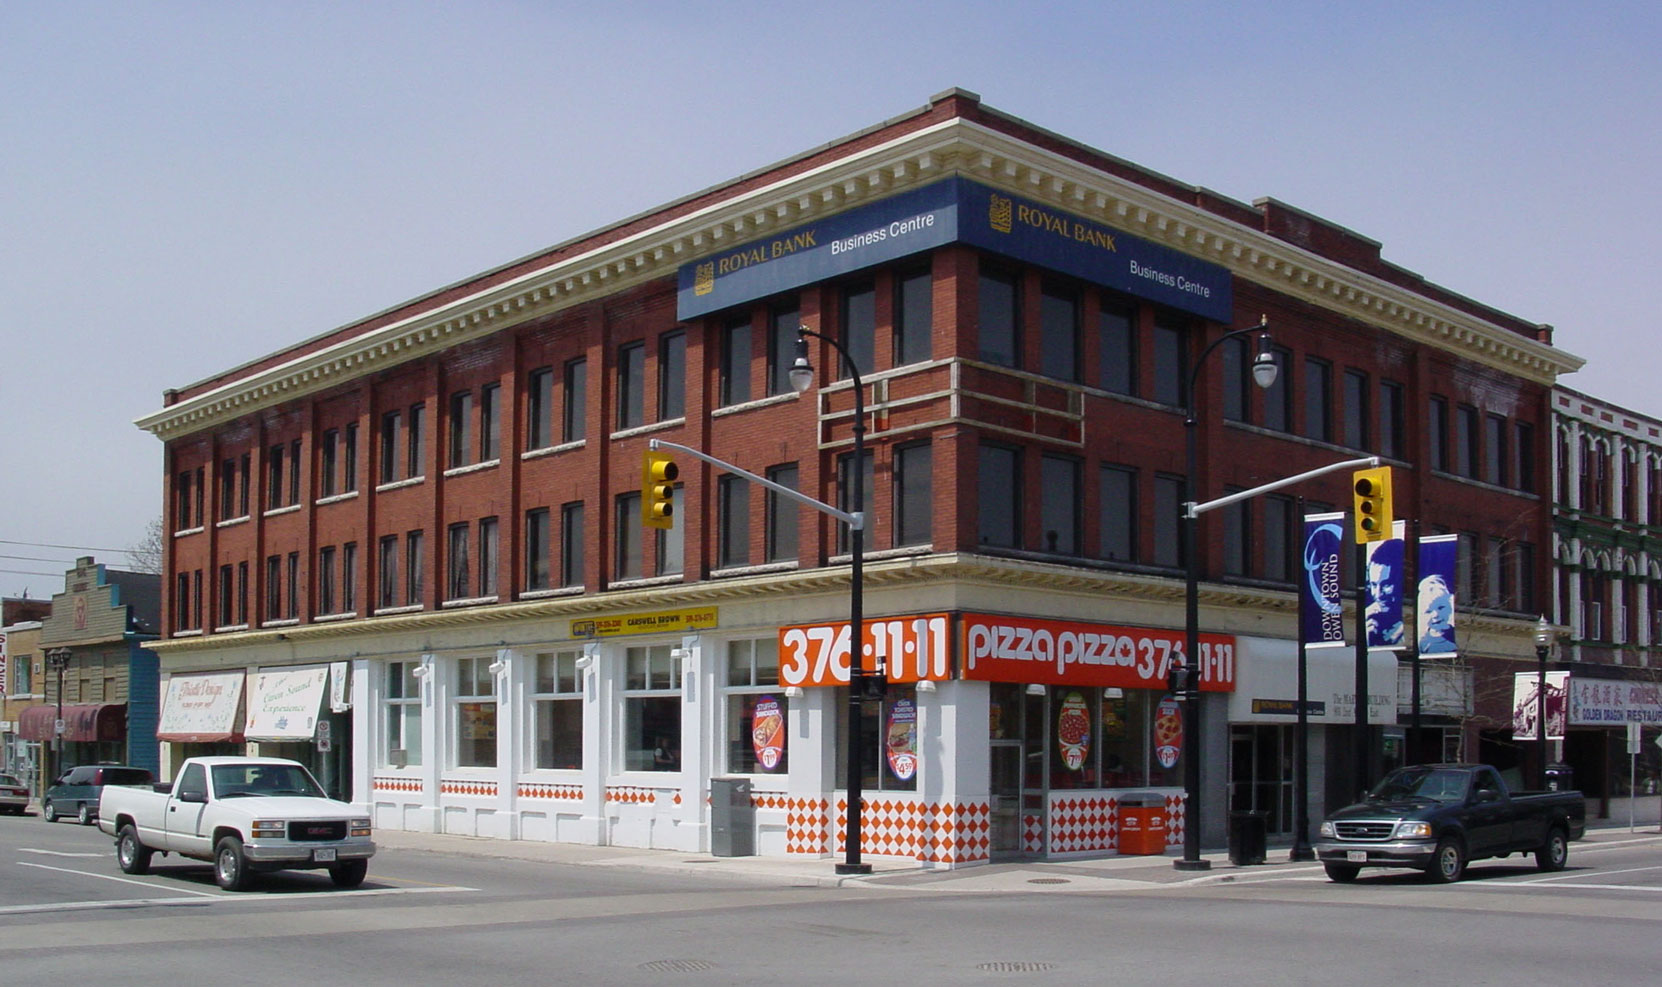 The Kilbourn New Block, 900 2nd Avenue East, in downtown Owen Sound, was built in 1910 by John M. Kilbourn and the Kilbourn family (photo by Author)